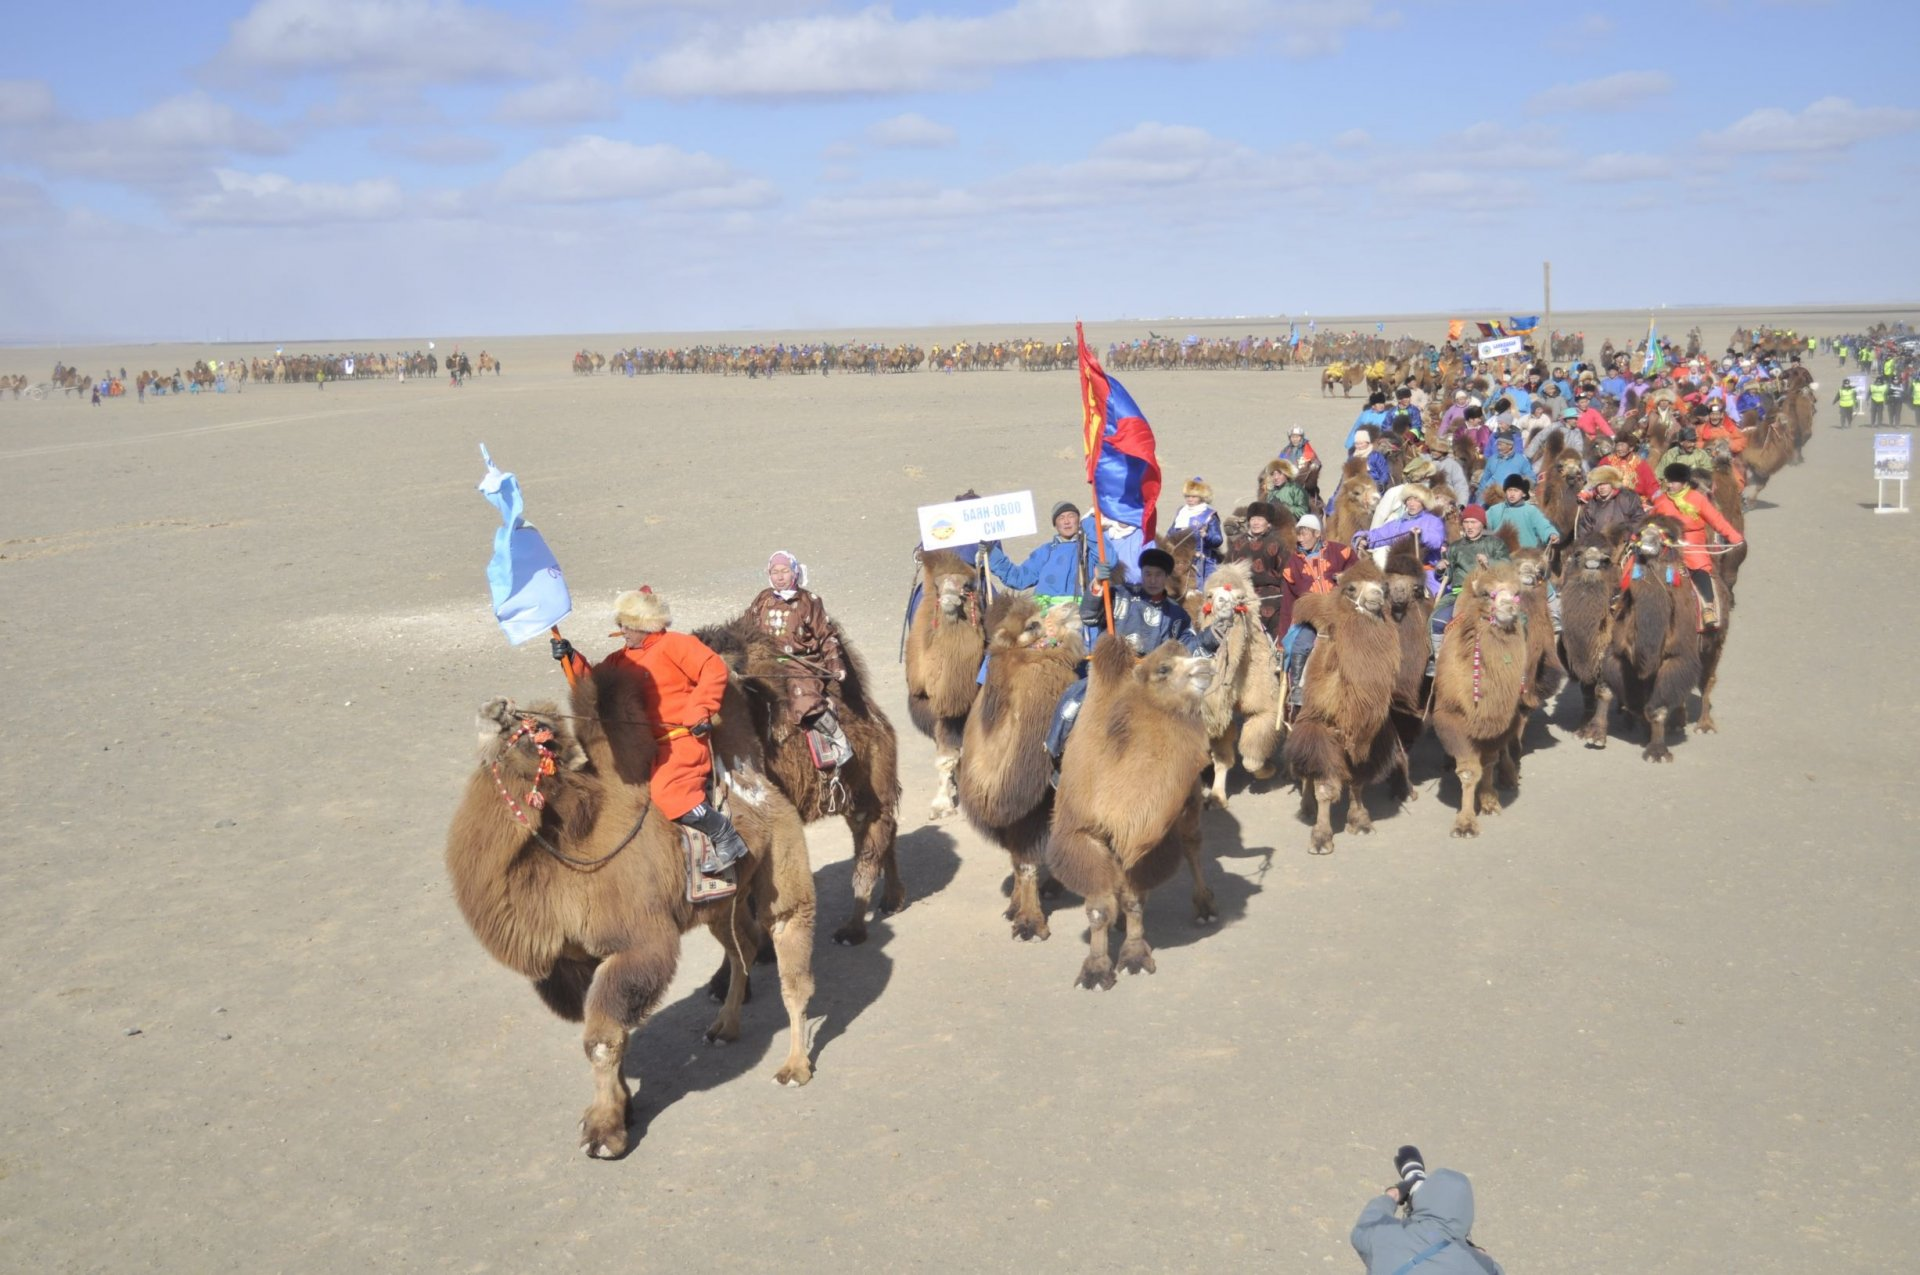 Two humped Bactrian camel riding journeys